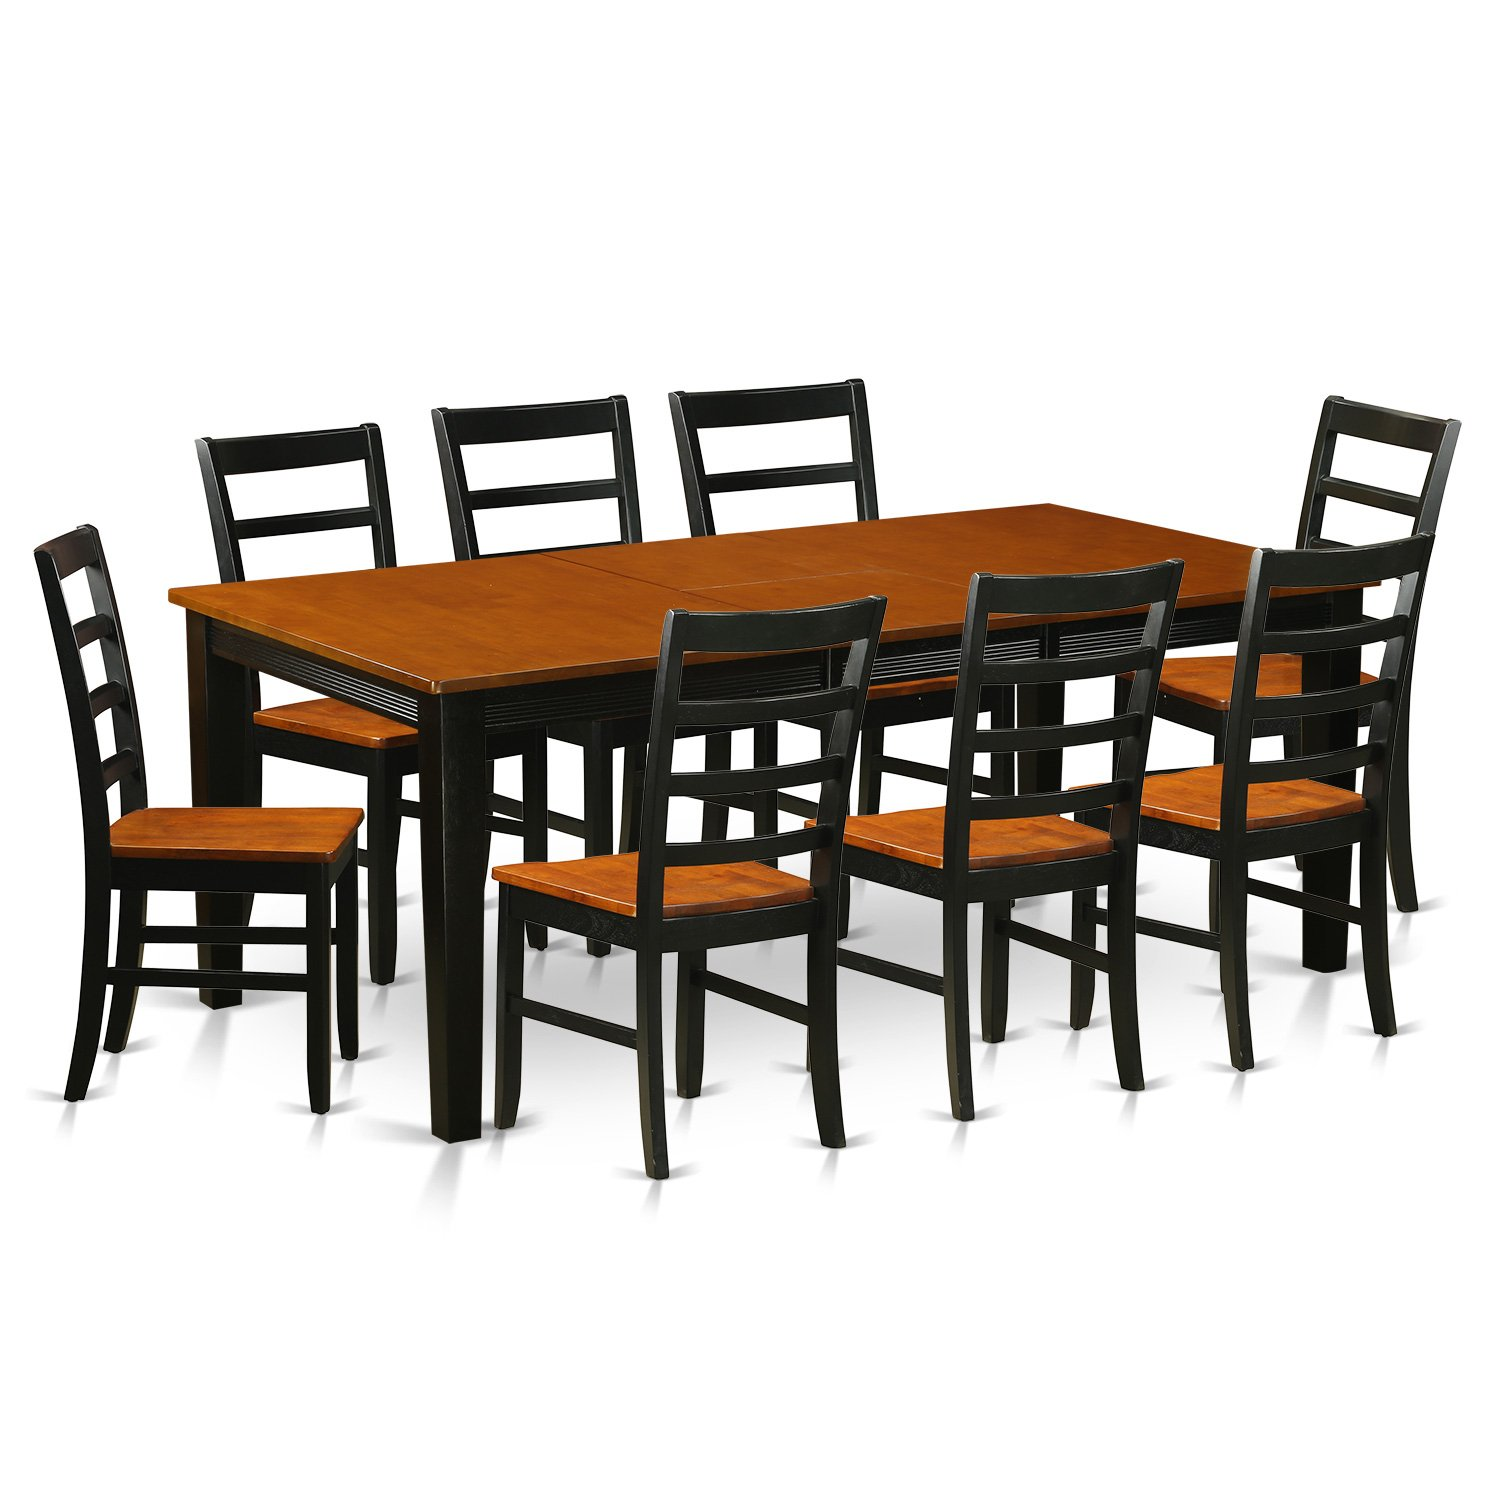 East West Furniture 9 Piece Dining Table with 8 Wooden Chairs Set by East West Furniture